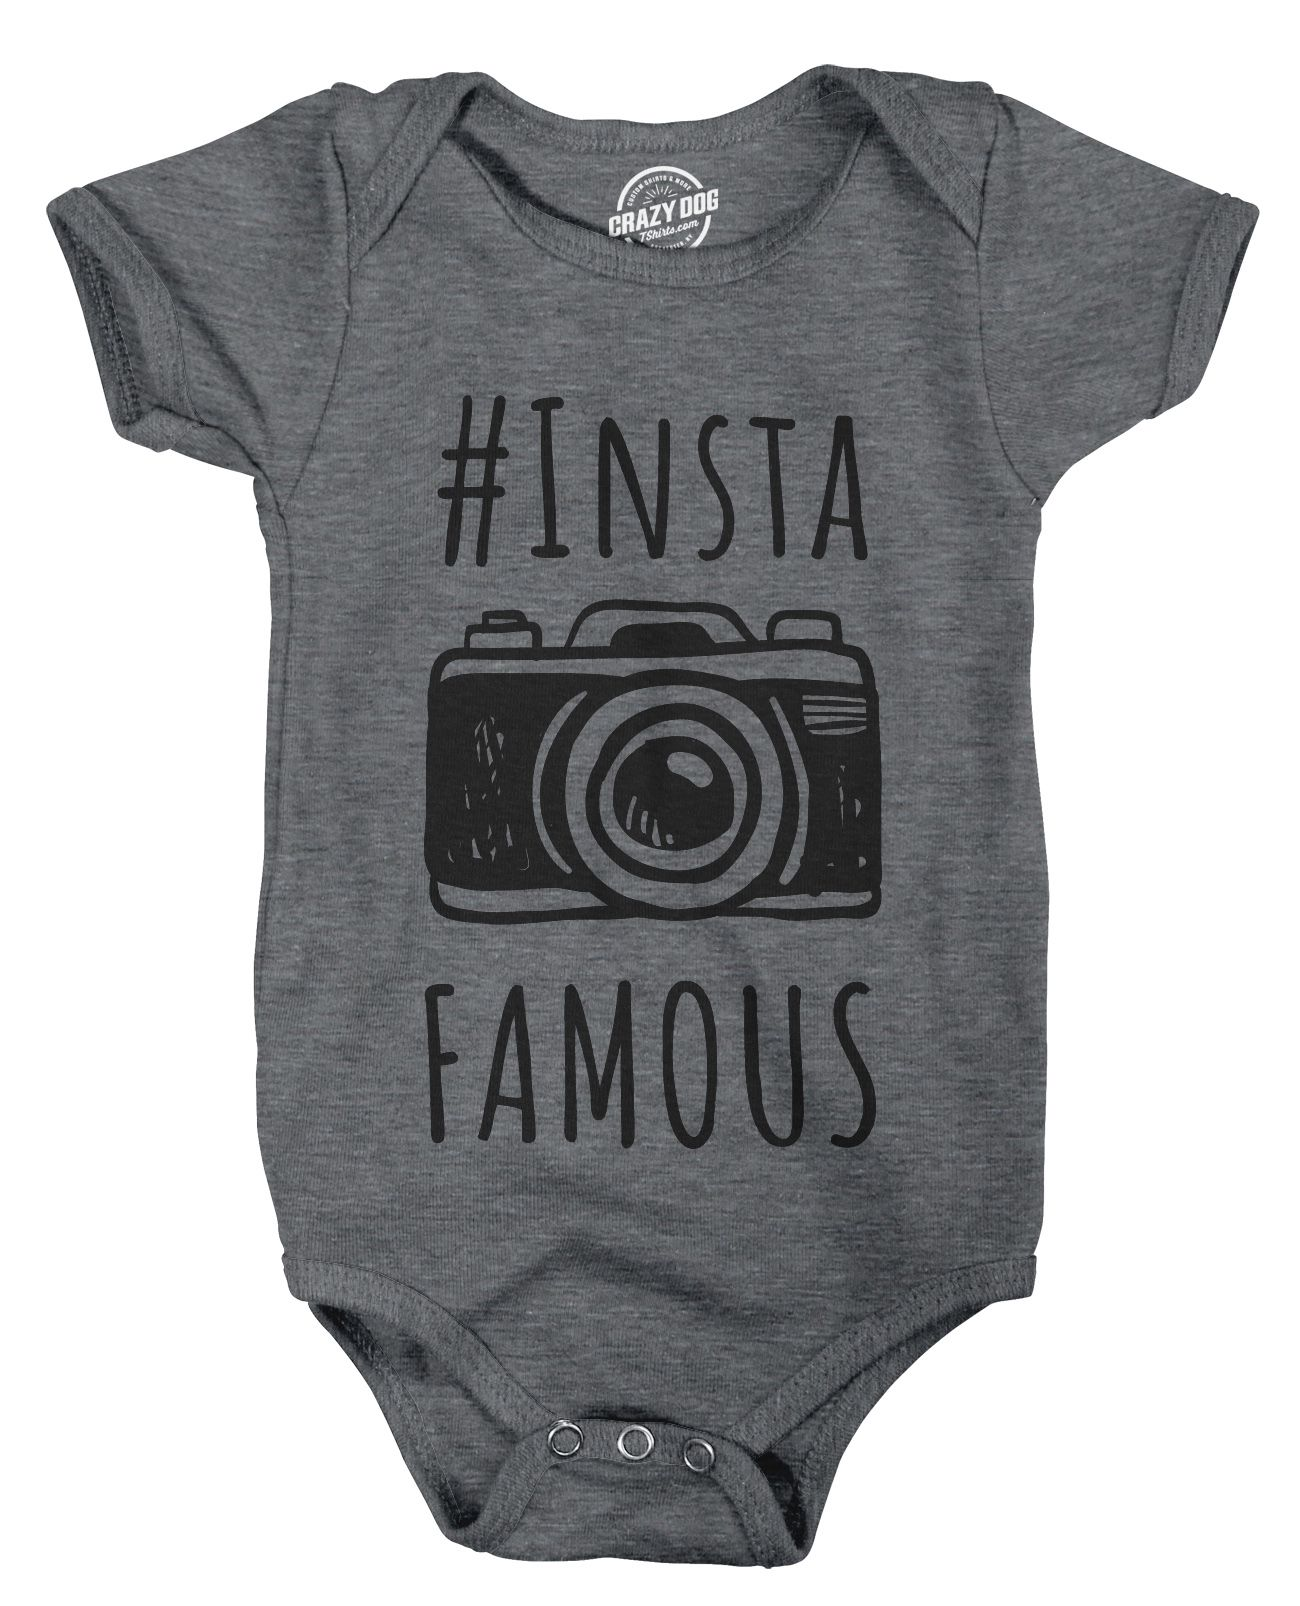 Creeper Instafamous Baby Jumpsuit Adorable Social Media Bodysuit For N